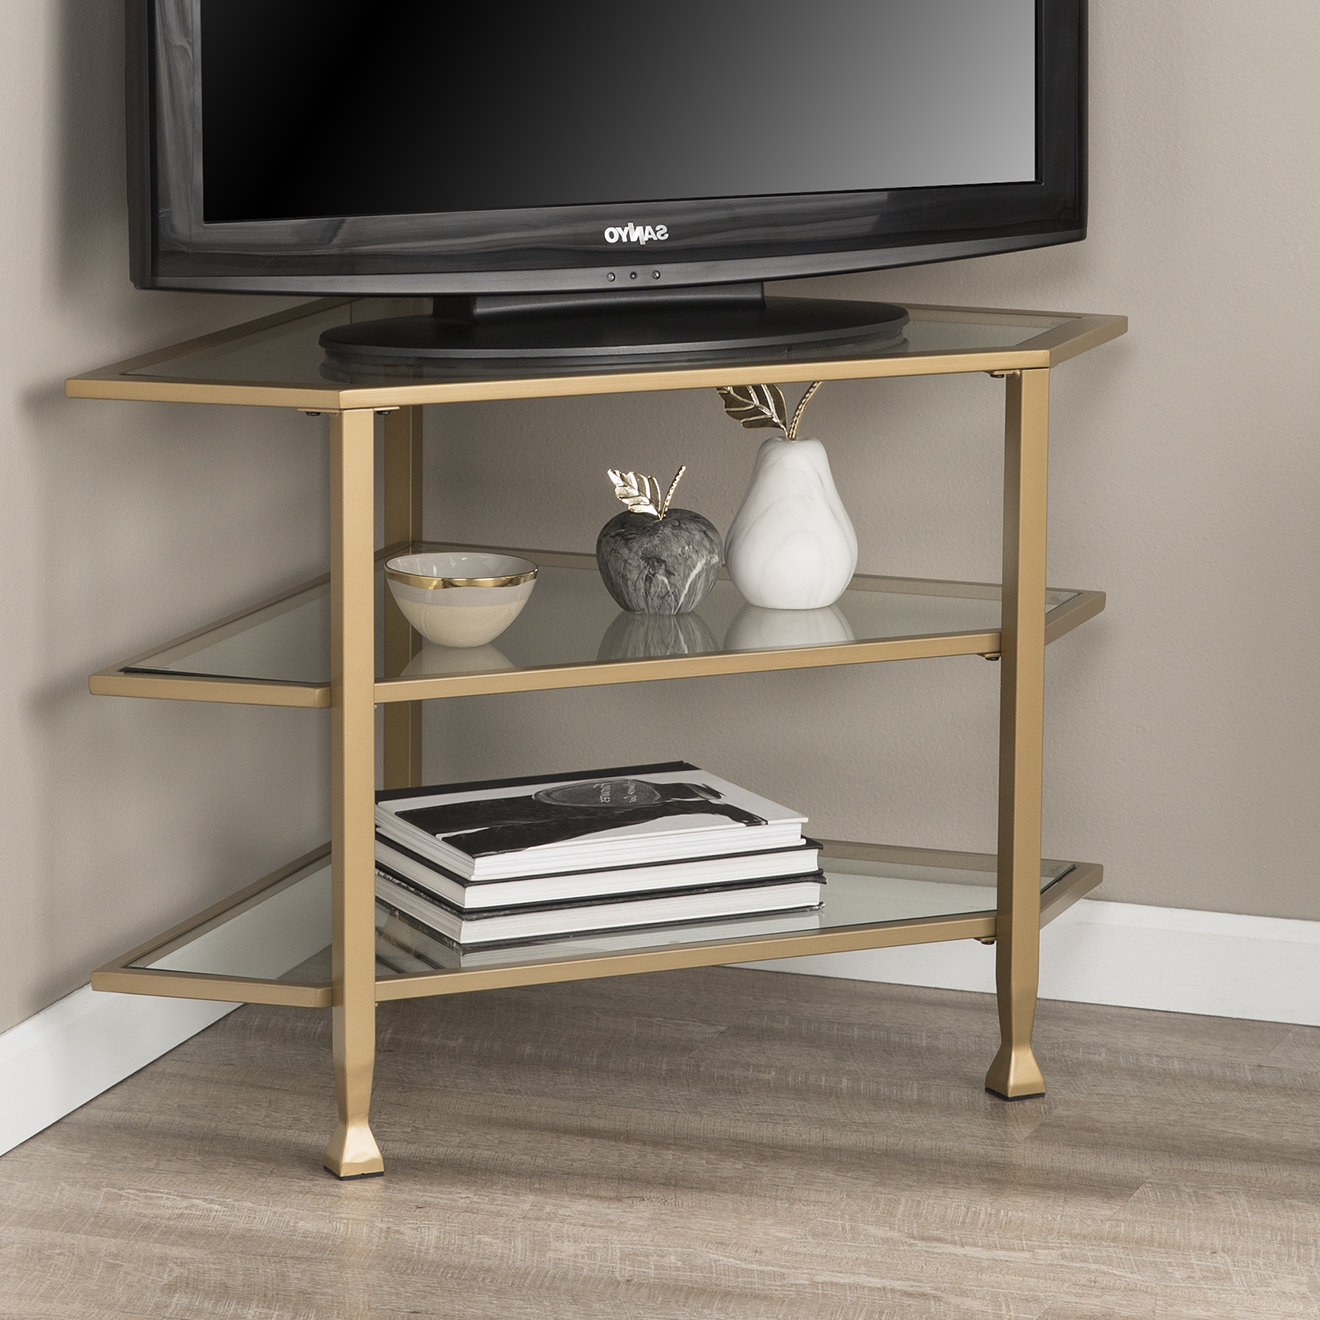 Glam Tv Stands You'll Love (View 2 of 20)